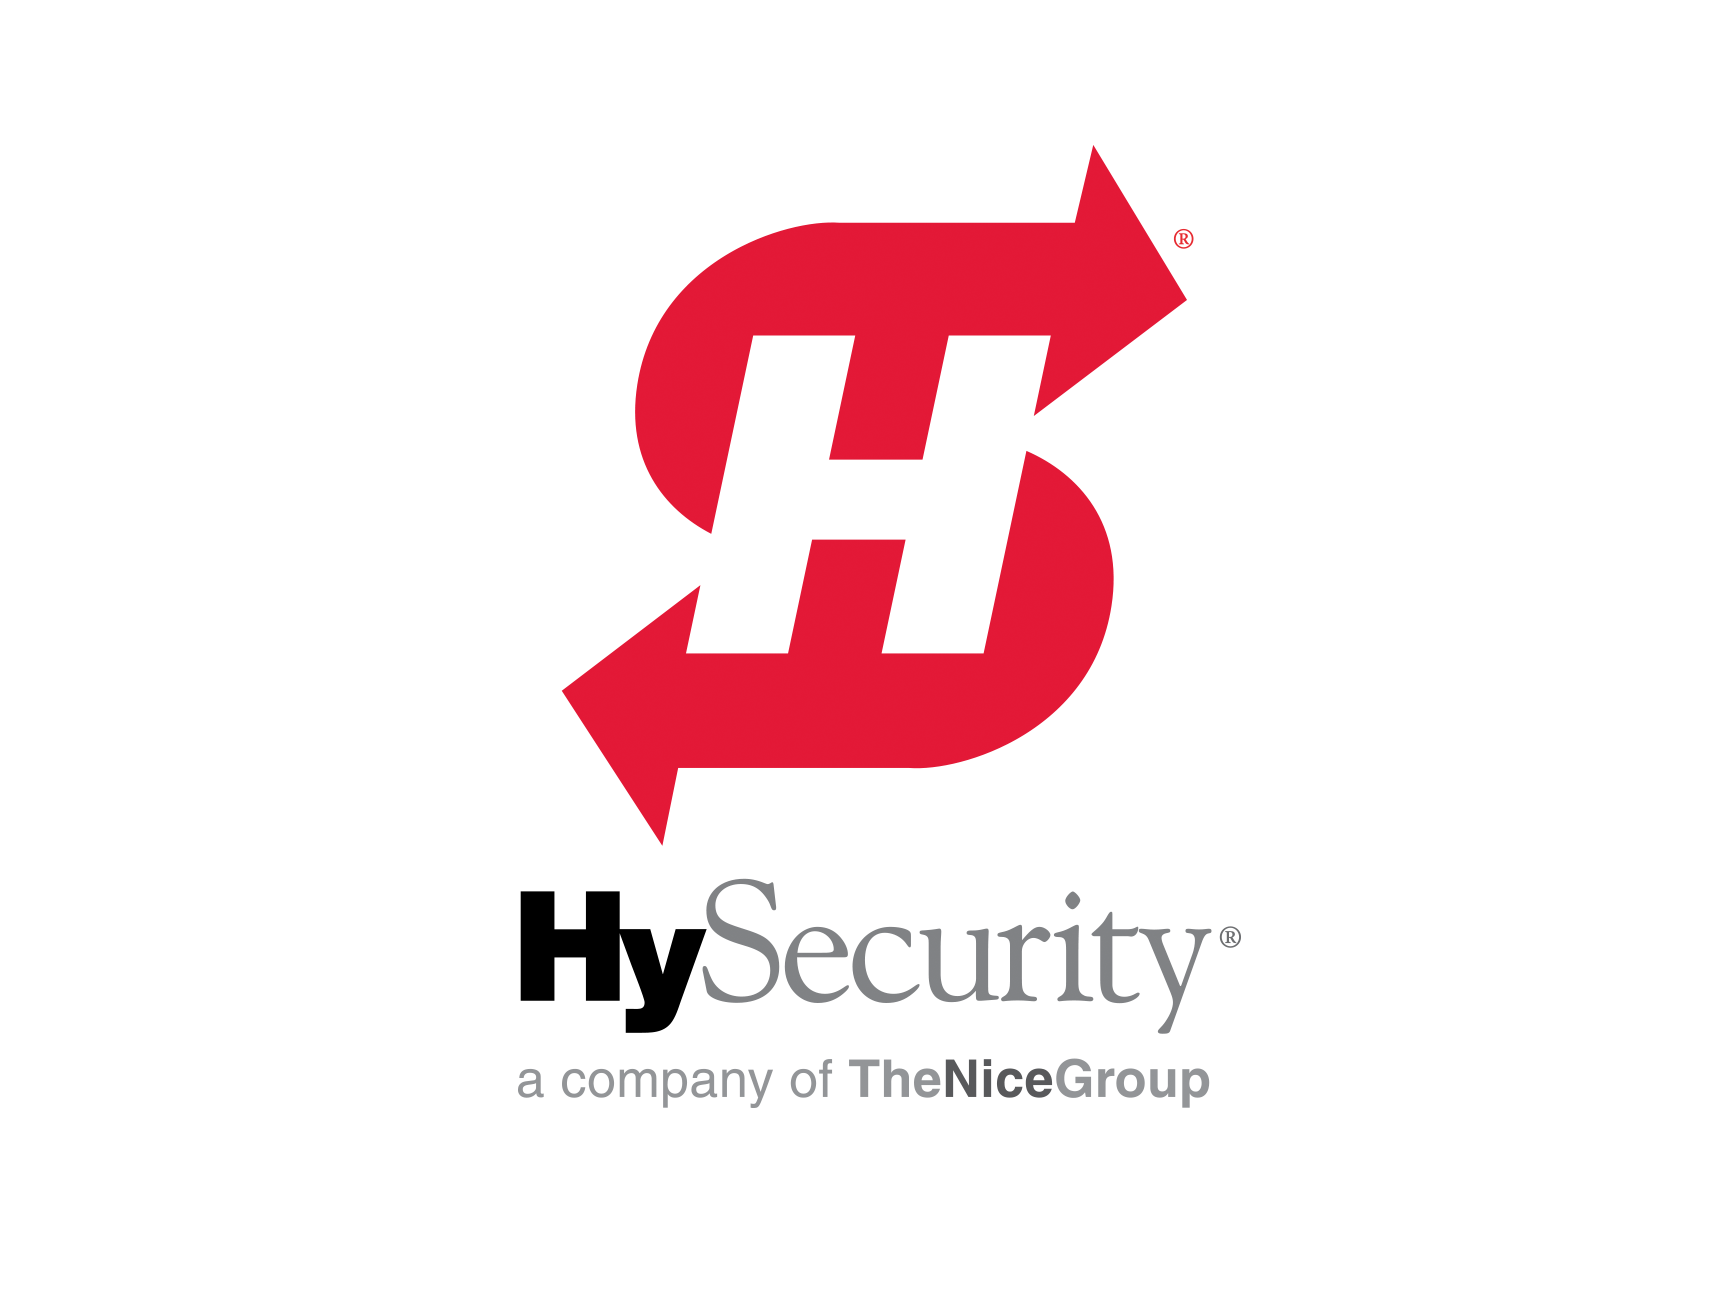 HySecurityNice_logo_vertical.png